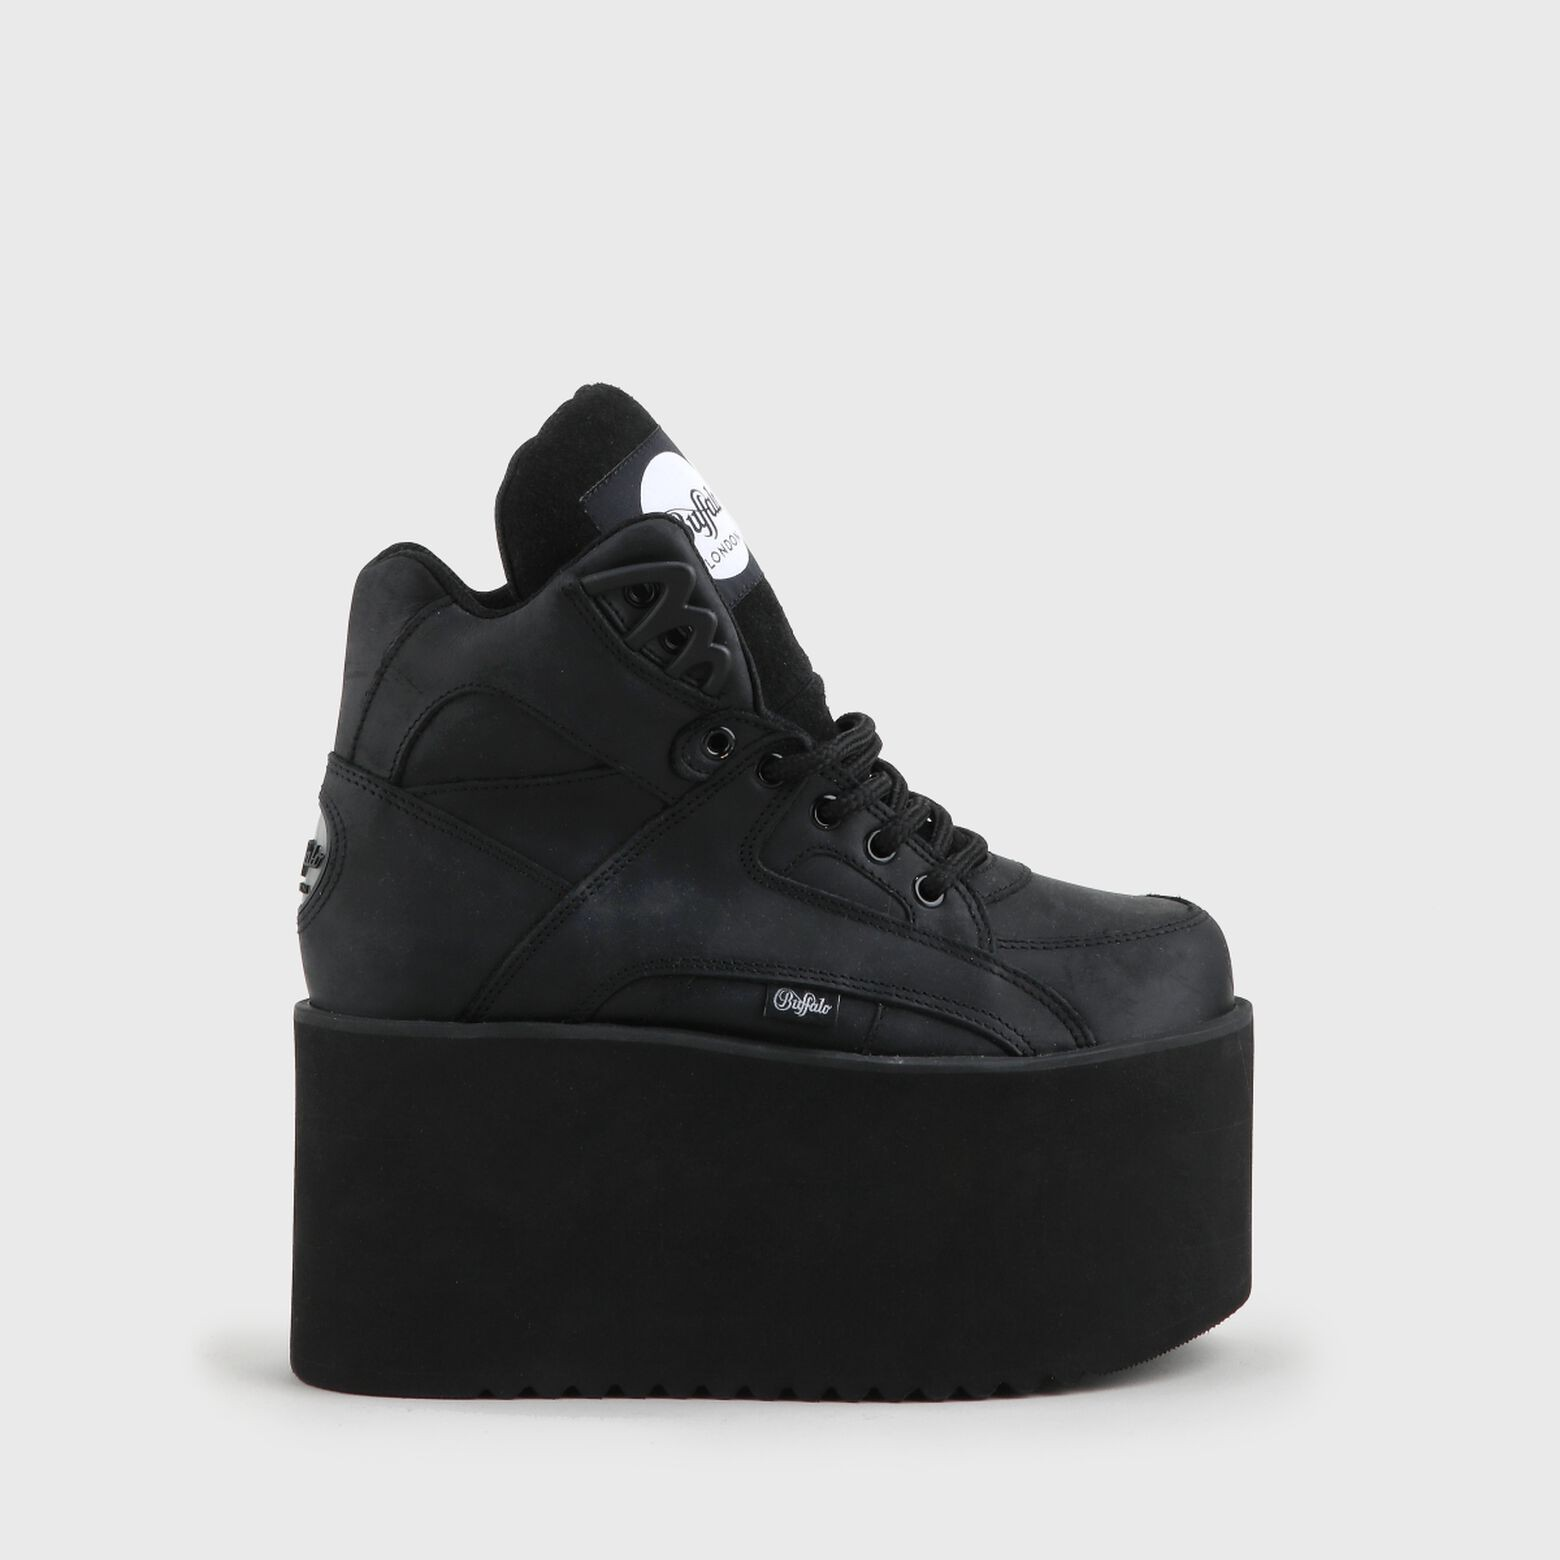 Buffalo Lodon Rising Towers High nubuck leather black